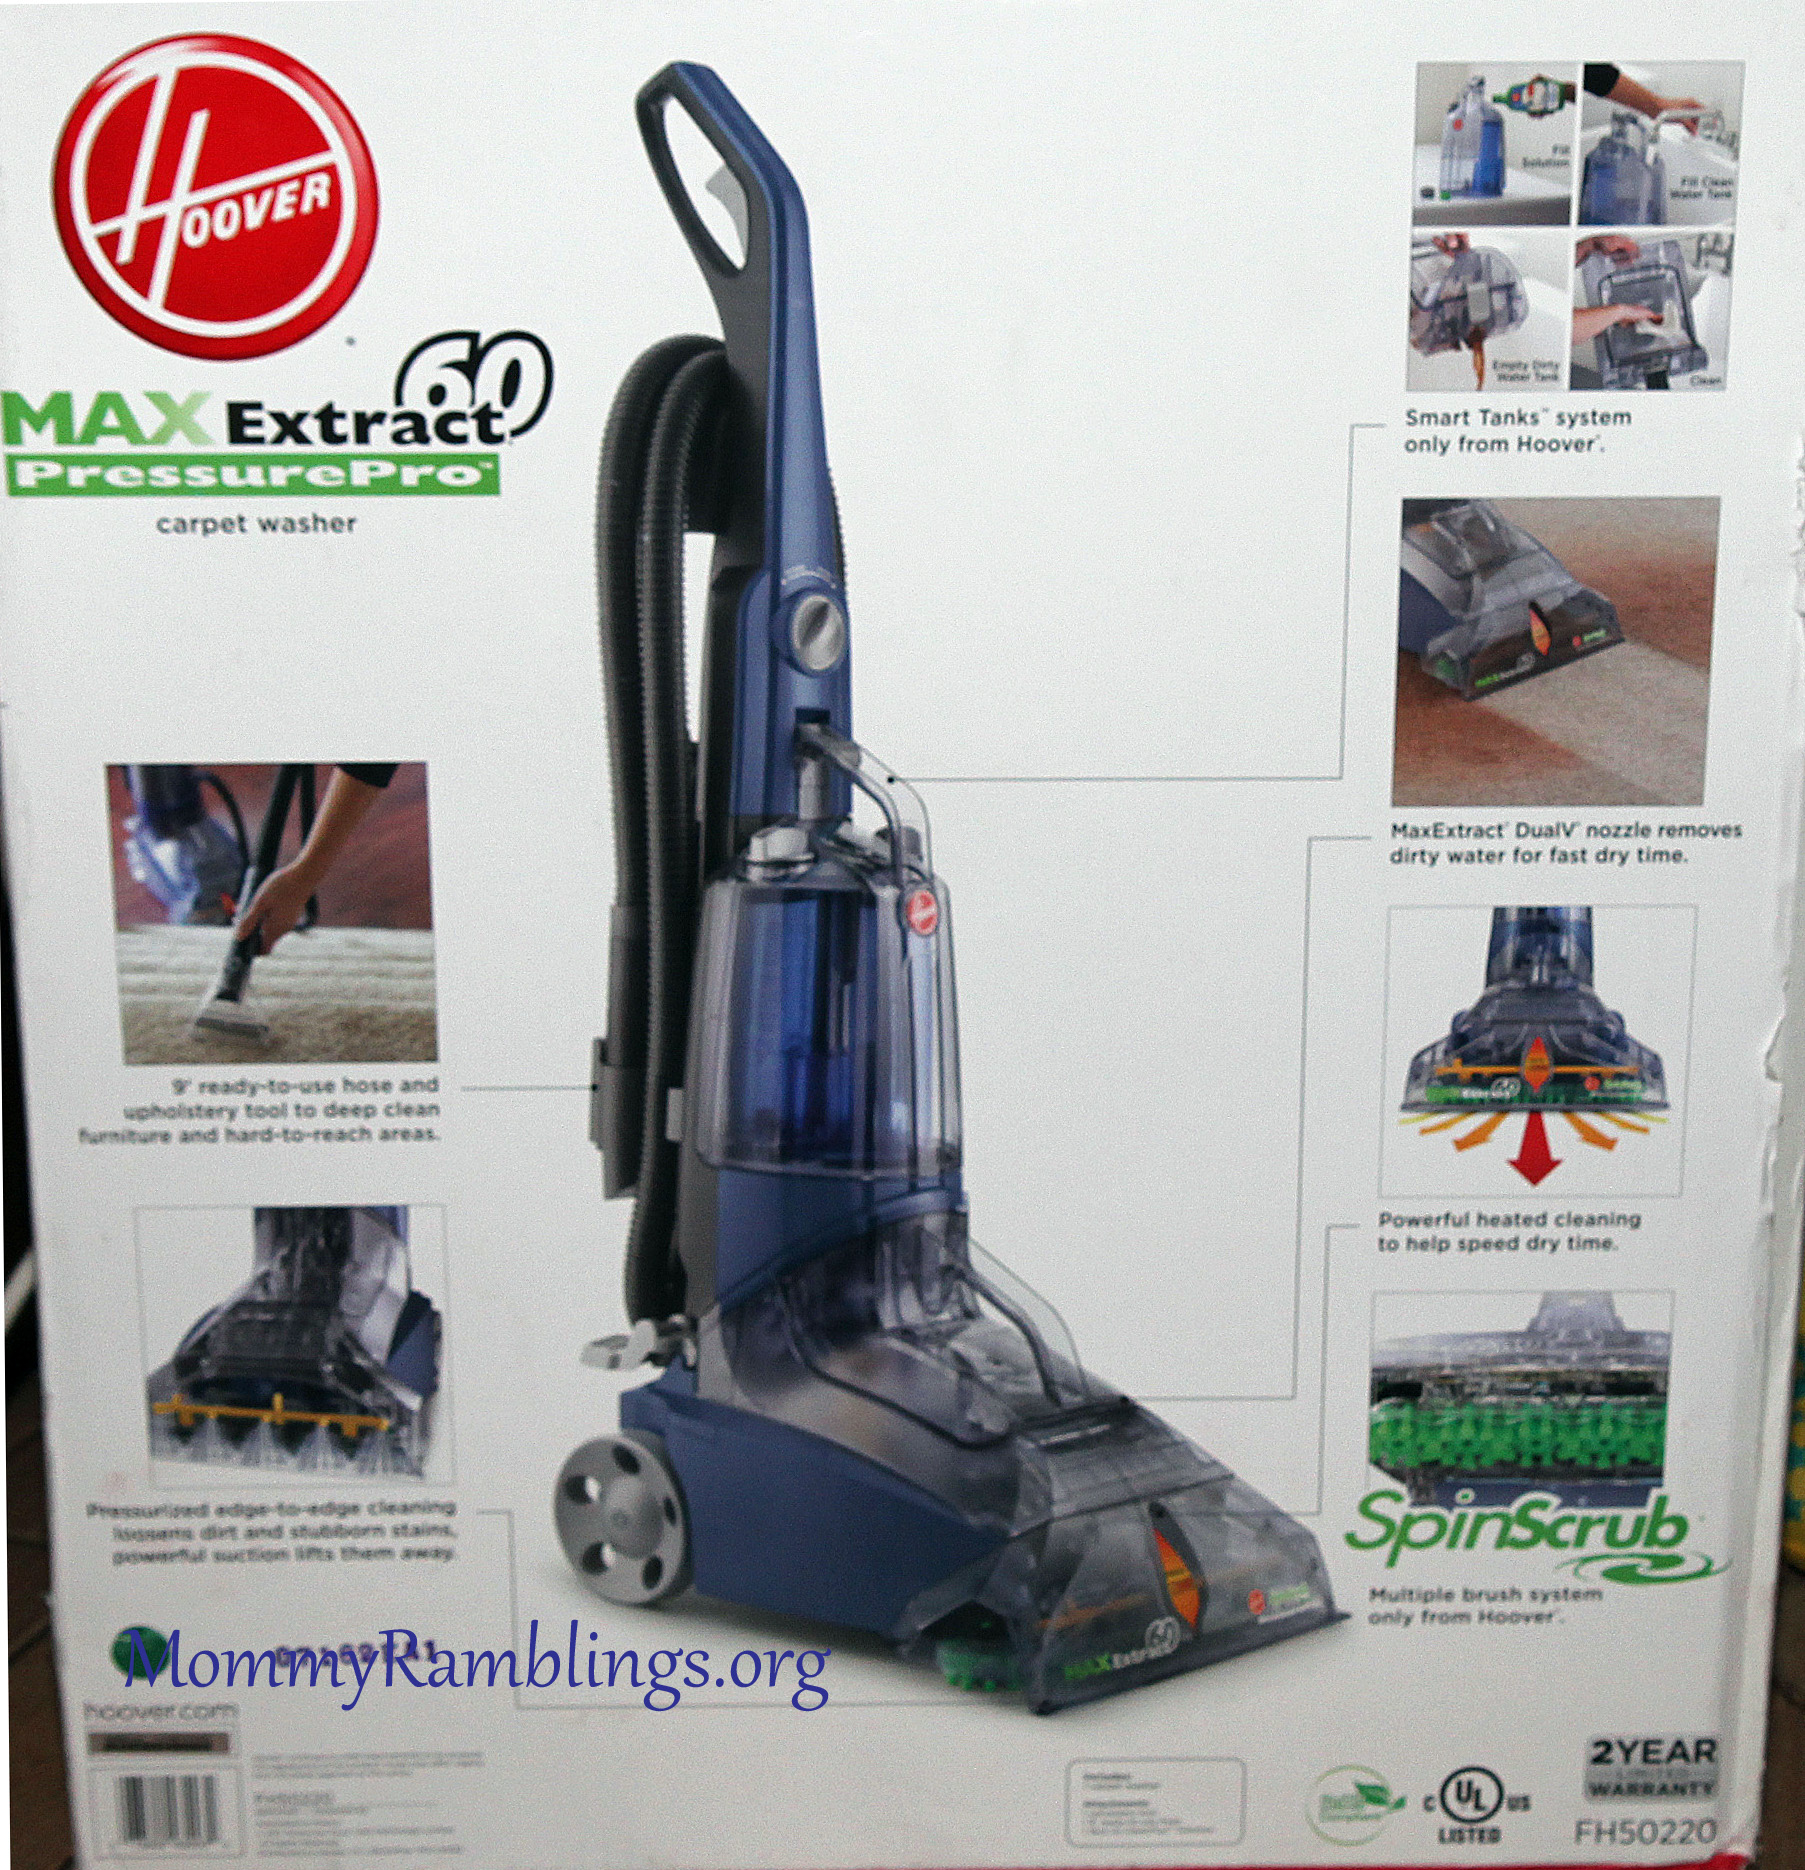 Max Extract 60 Pressure Pro Carpet Deep Cleaner Archives Mommy